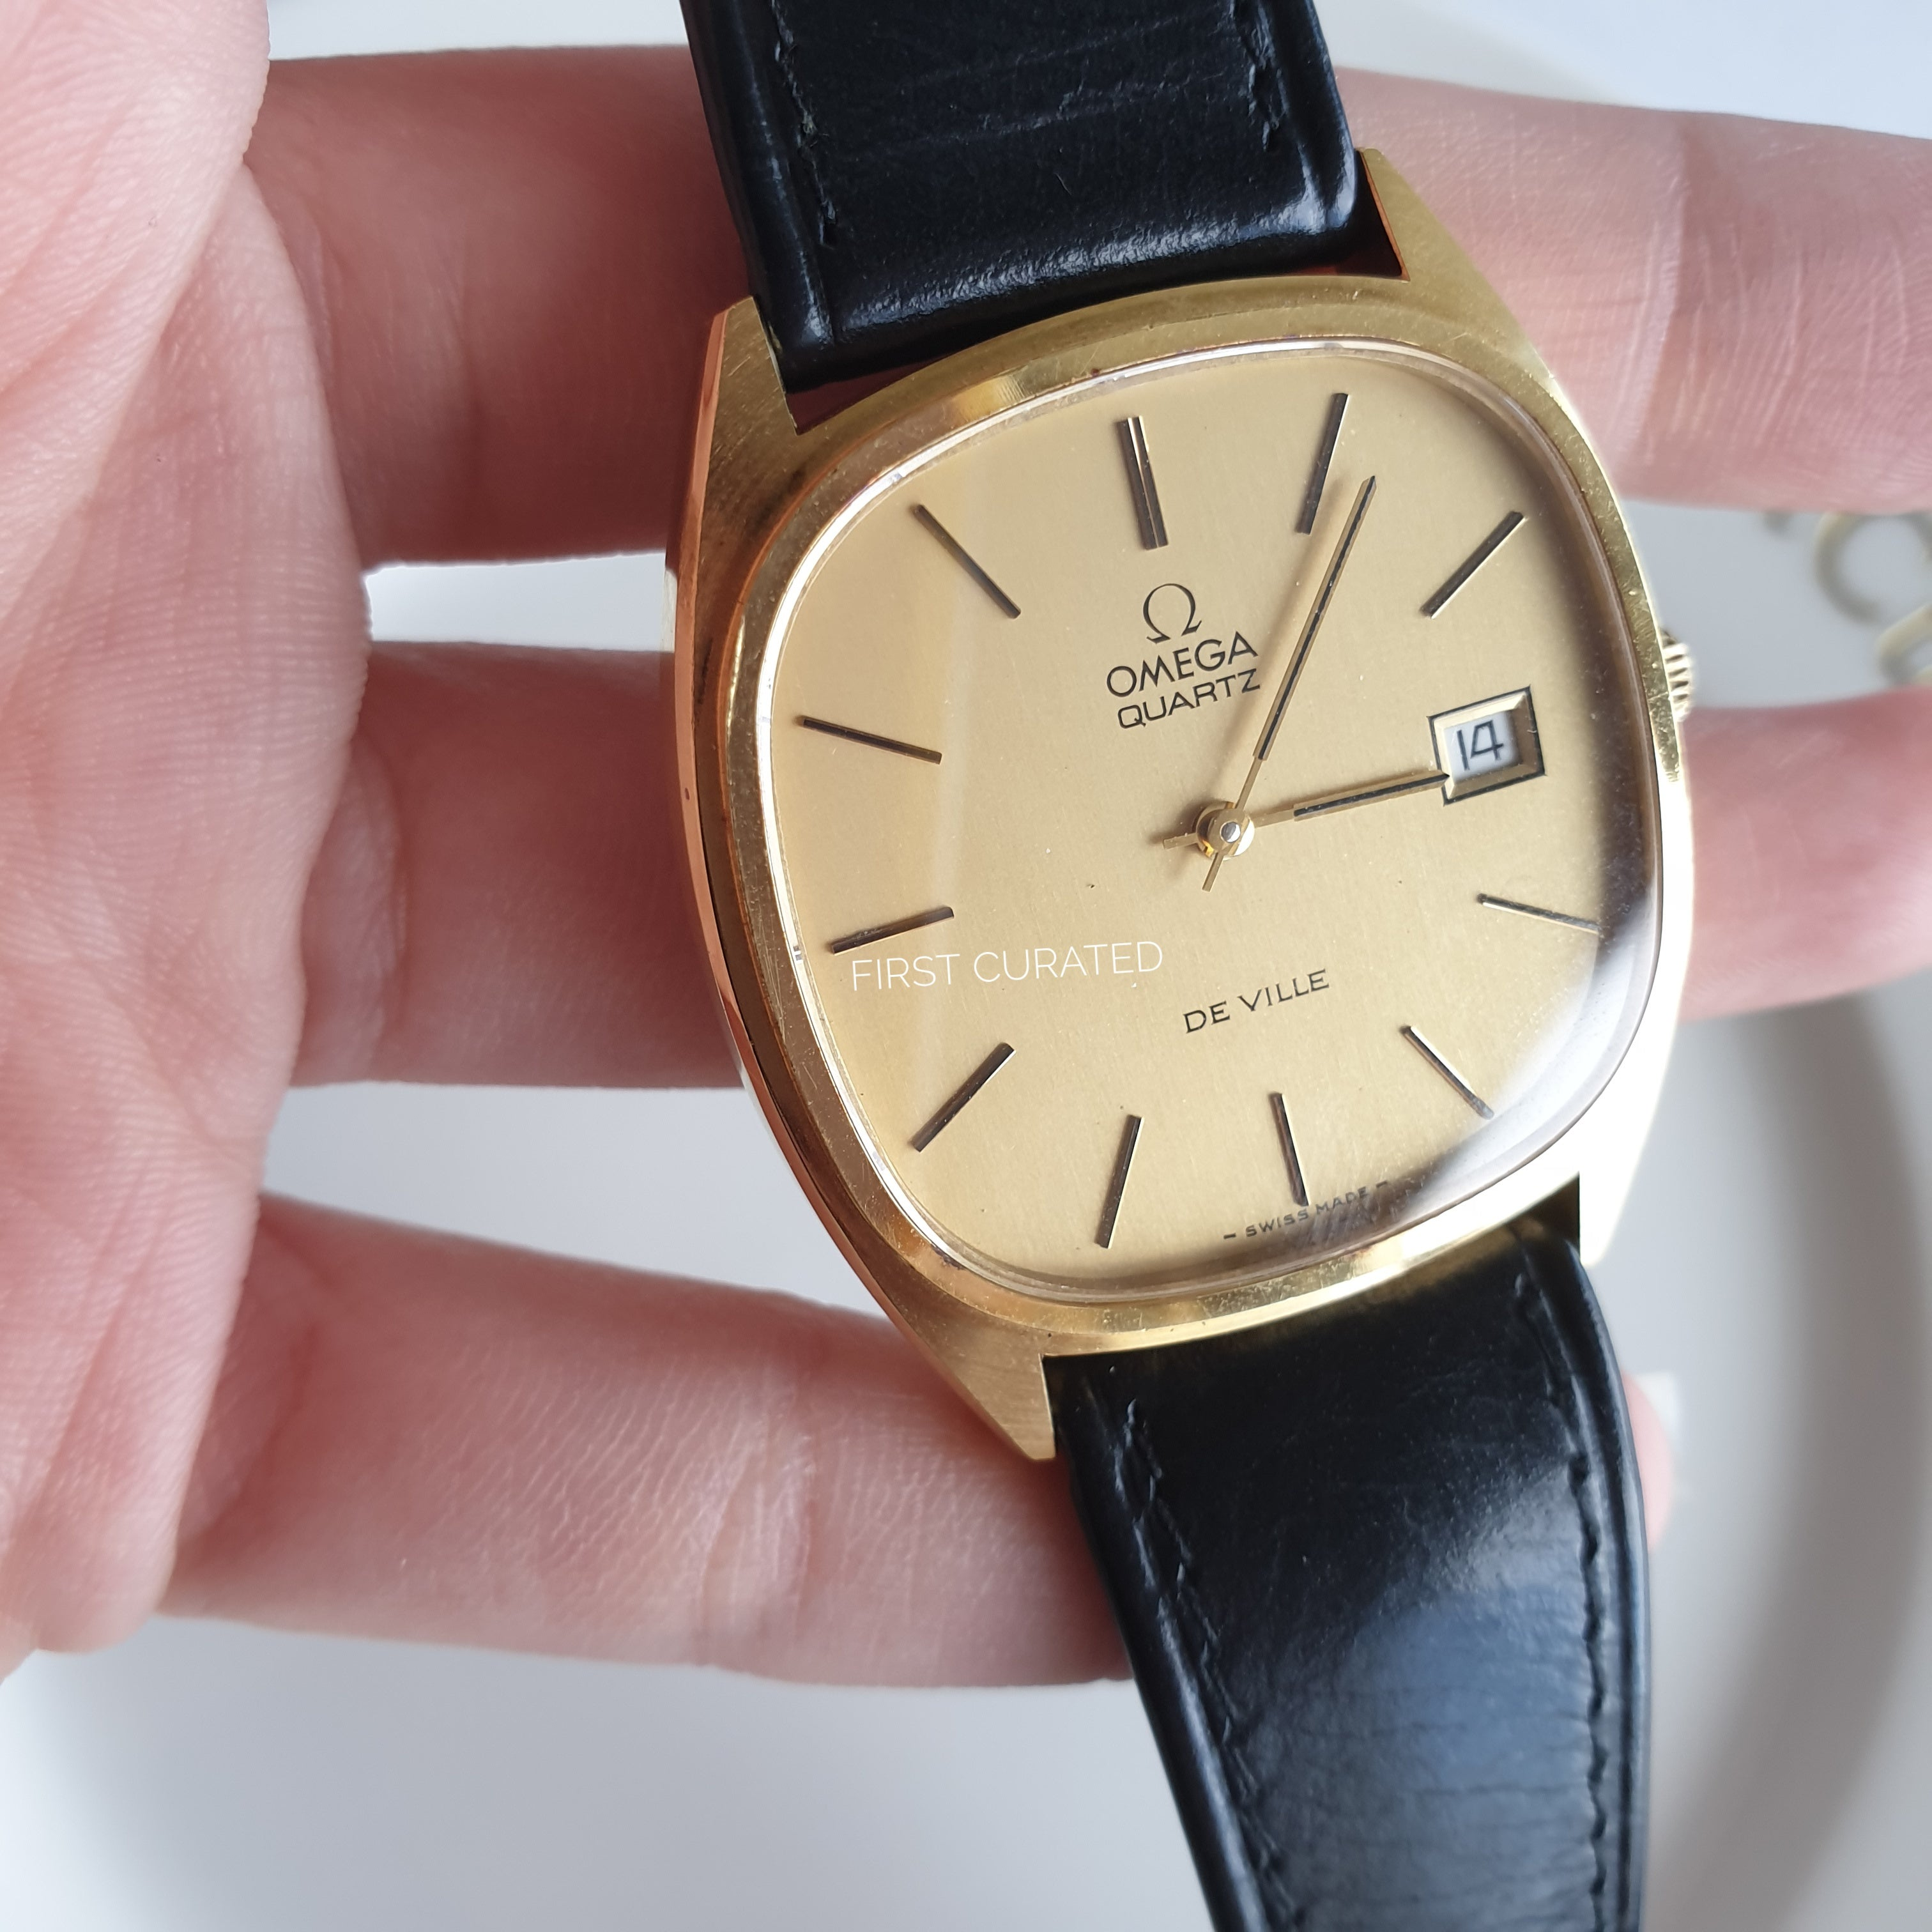 Omega Black Leather Gold-toned Watch